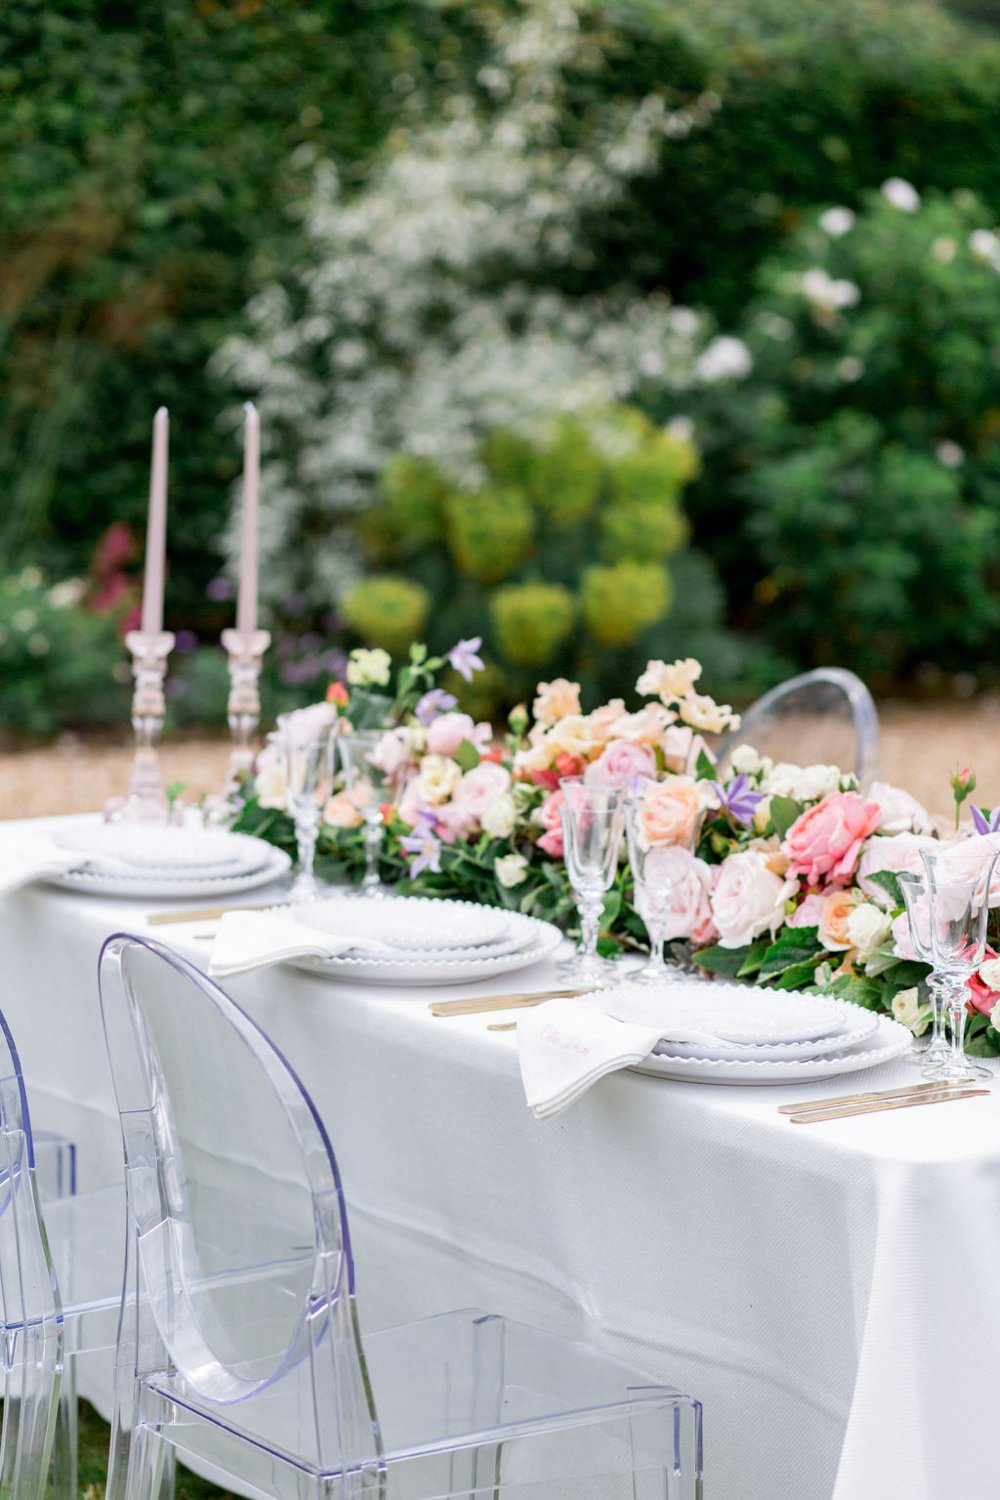 Tablescape Table Ghost Chairs Decor Flowers English Garden Wedding Inspiration Philippa Sian Photography